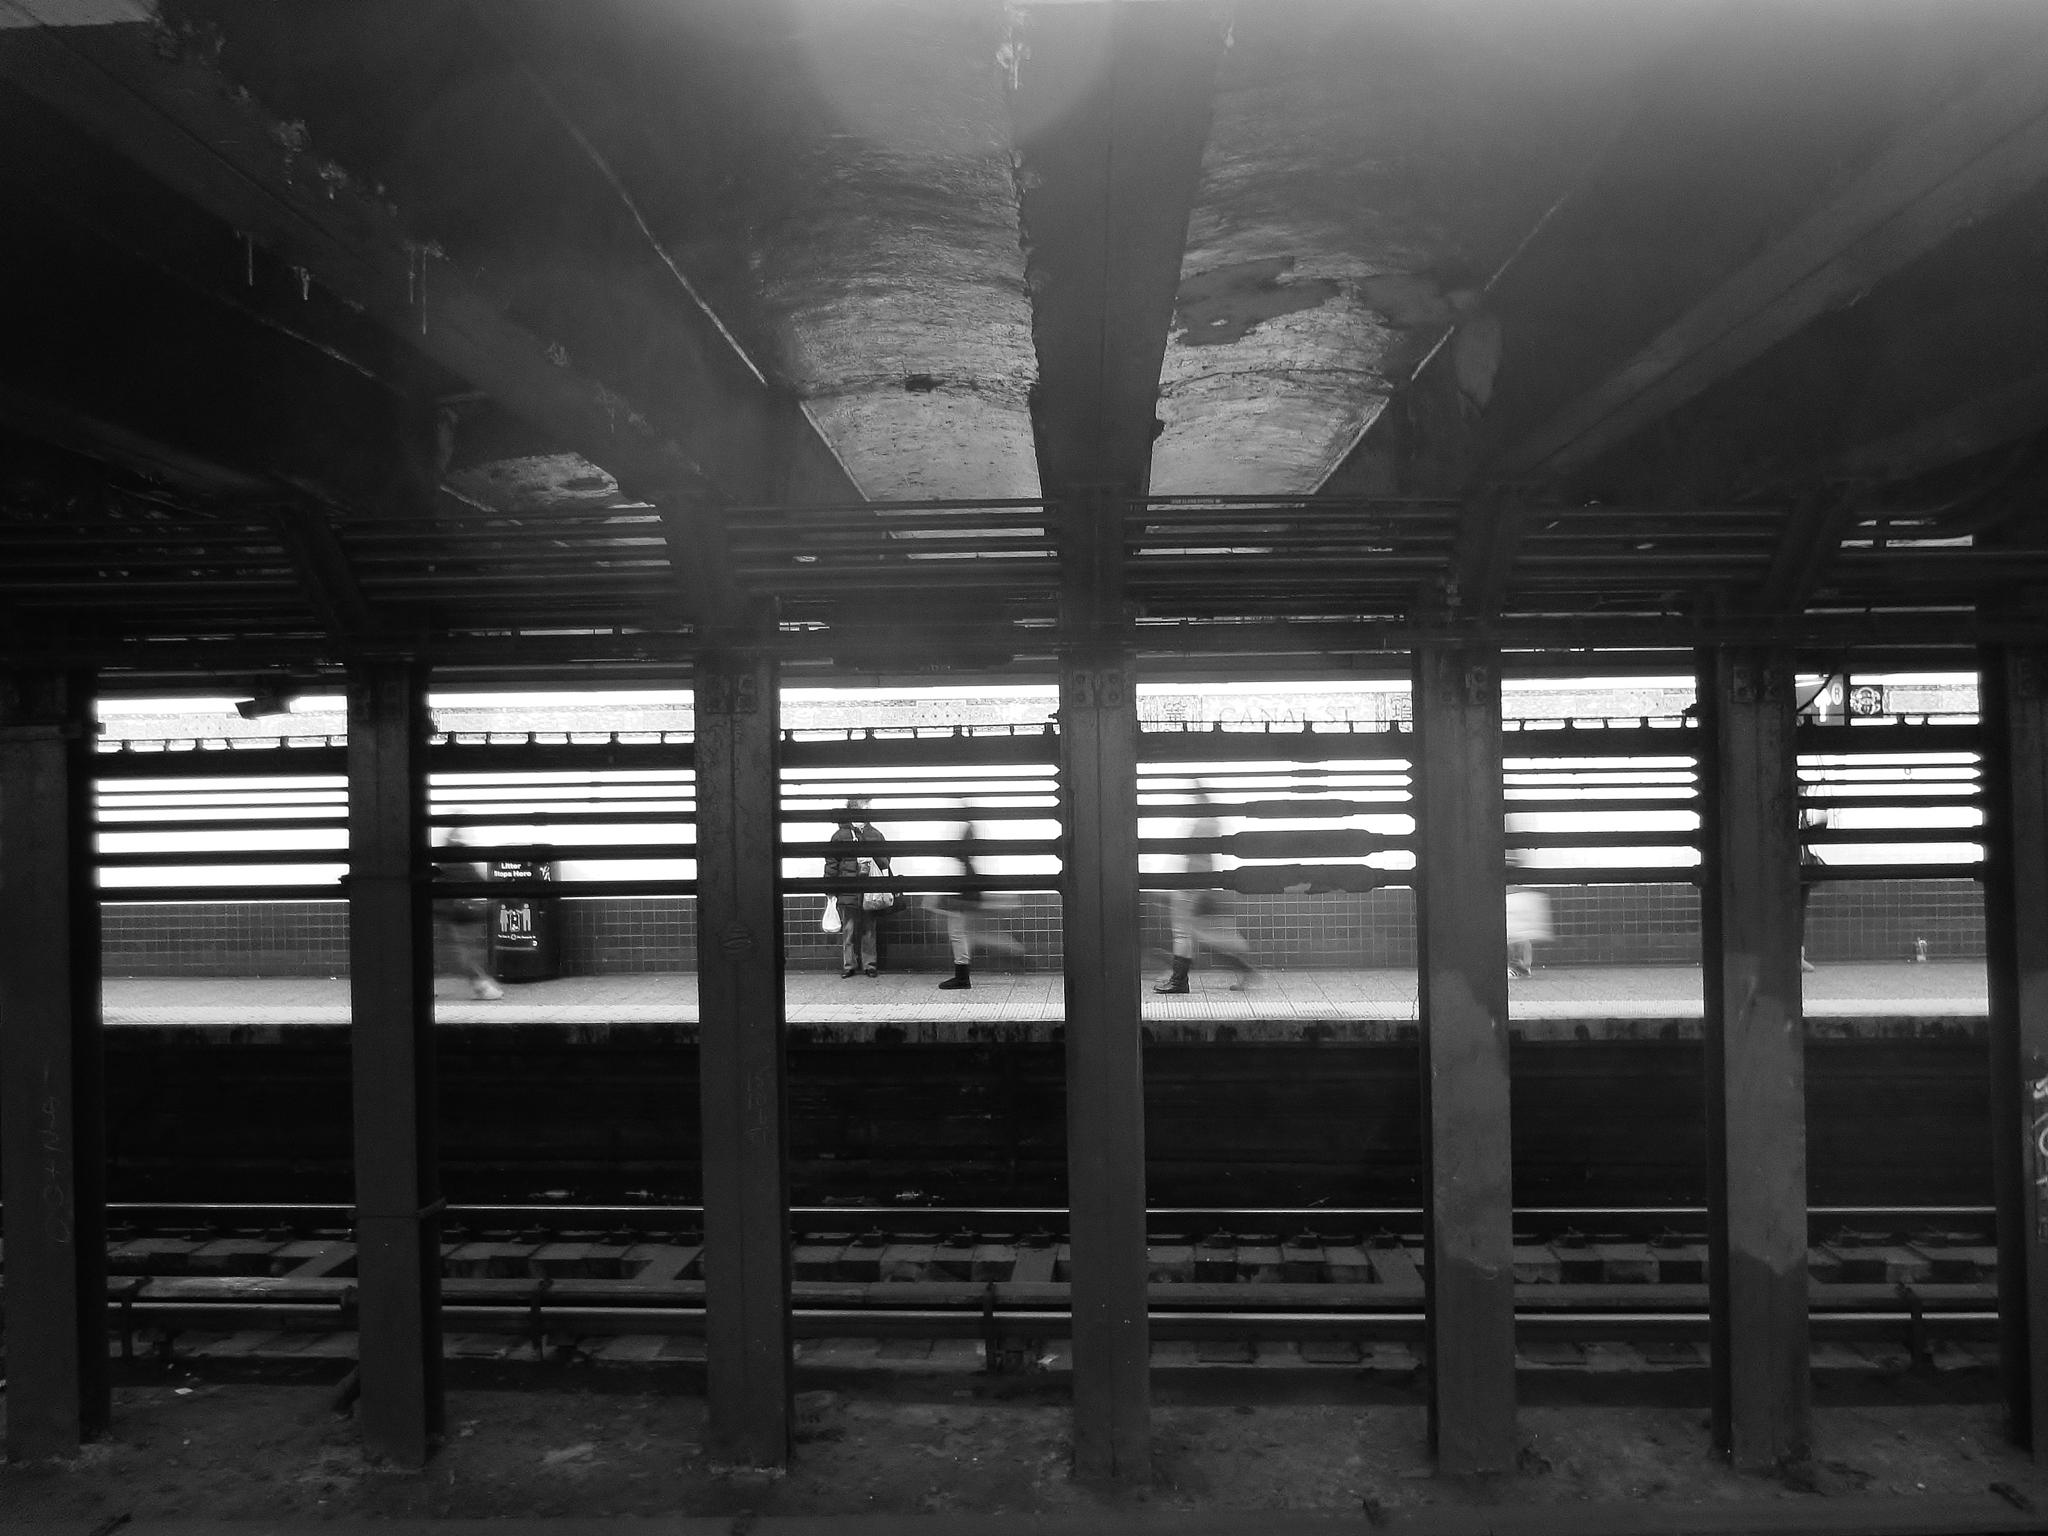 Canal Street Station, Manhattan, NYC by cgsahar